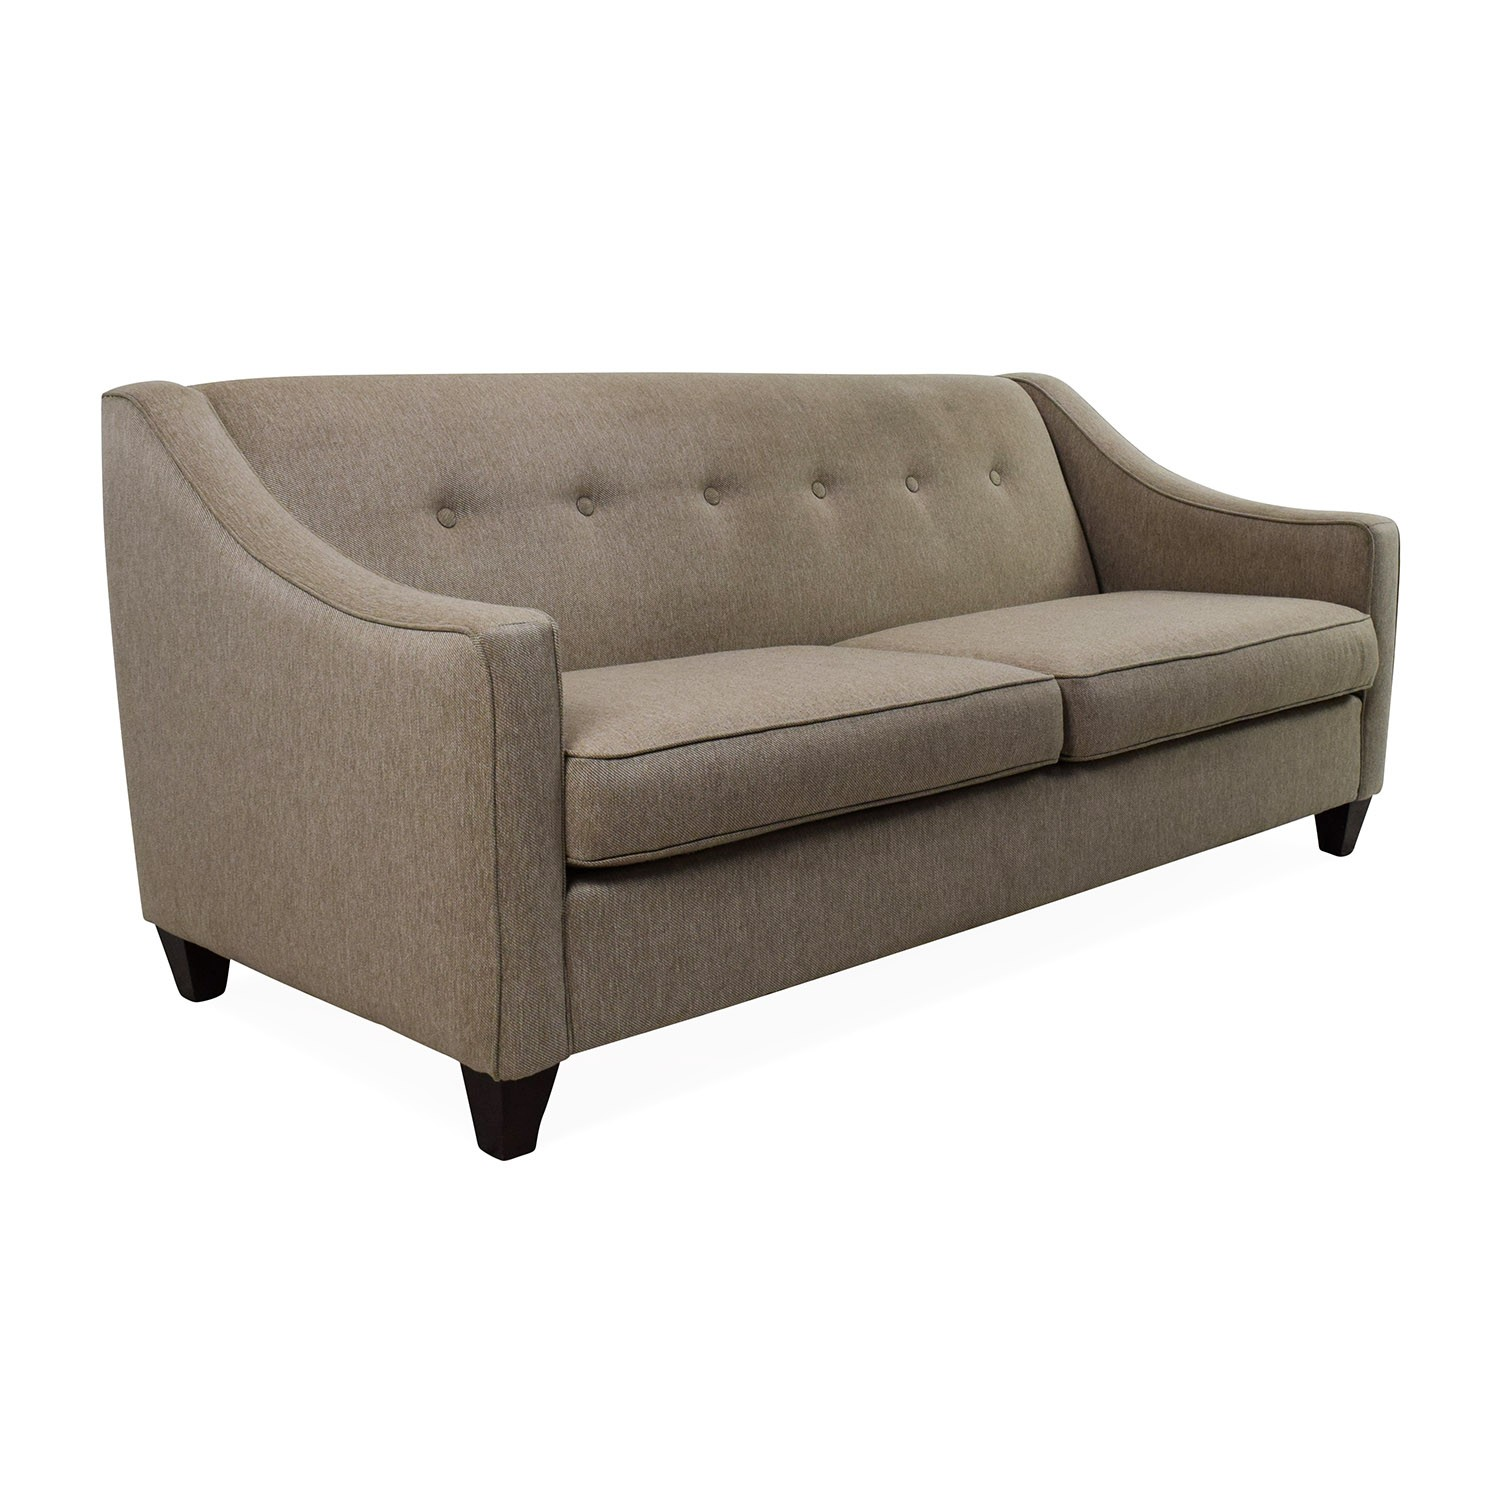 Raymour and Flanigan sofa Fascinating Off Raymour and Flanigan Raymour Flanigan ashton sofa sofas Portrait